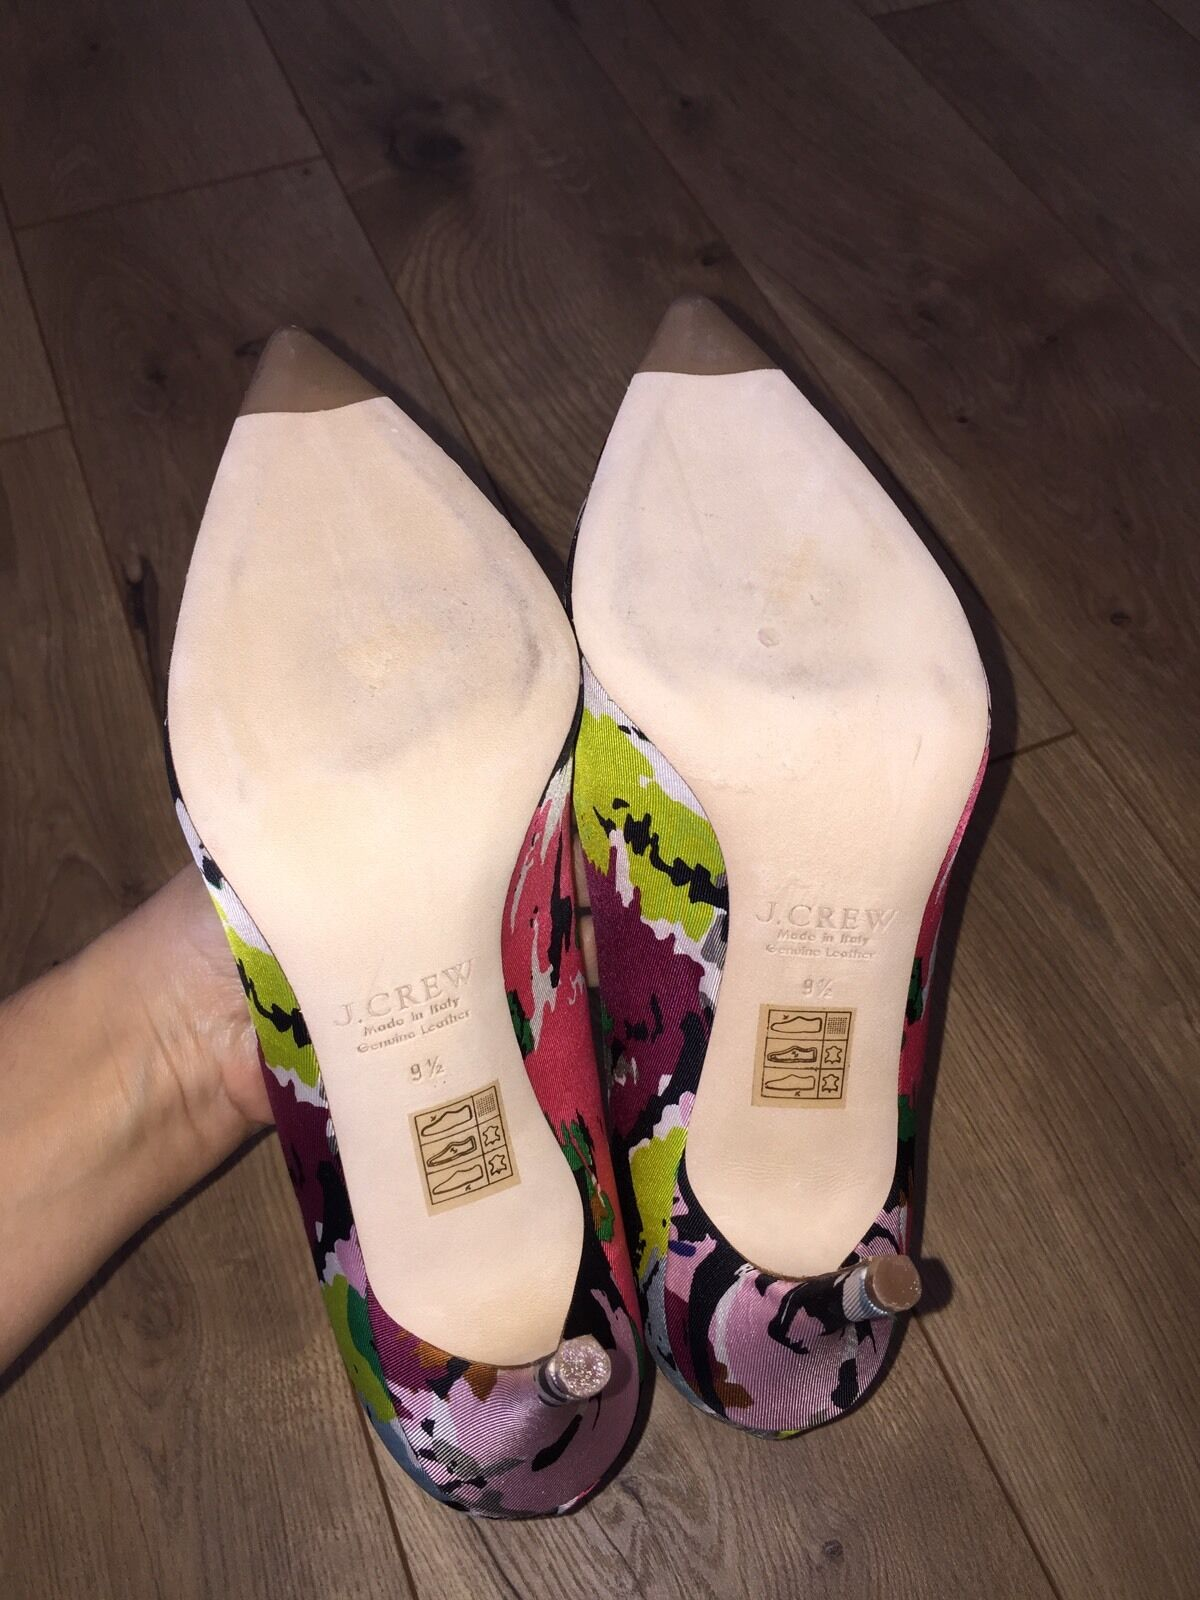 NEW JCrew JCrew JCrew COLLECTION  378 Elsie Jeweled Pumps Abstract Print 9.5 f4870 SOLD-OUT b02972